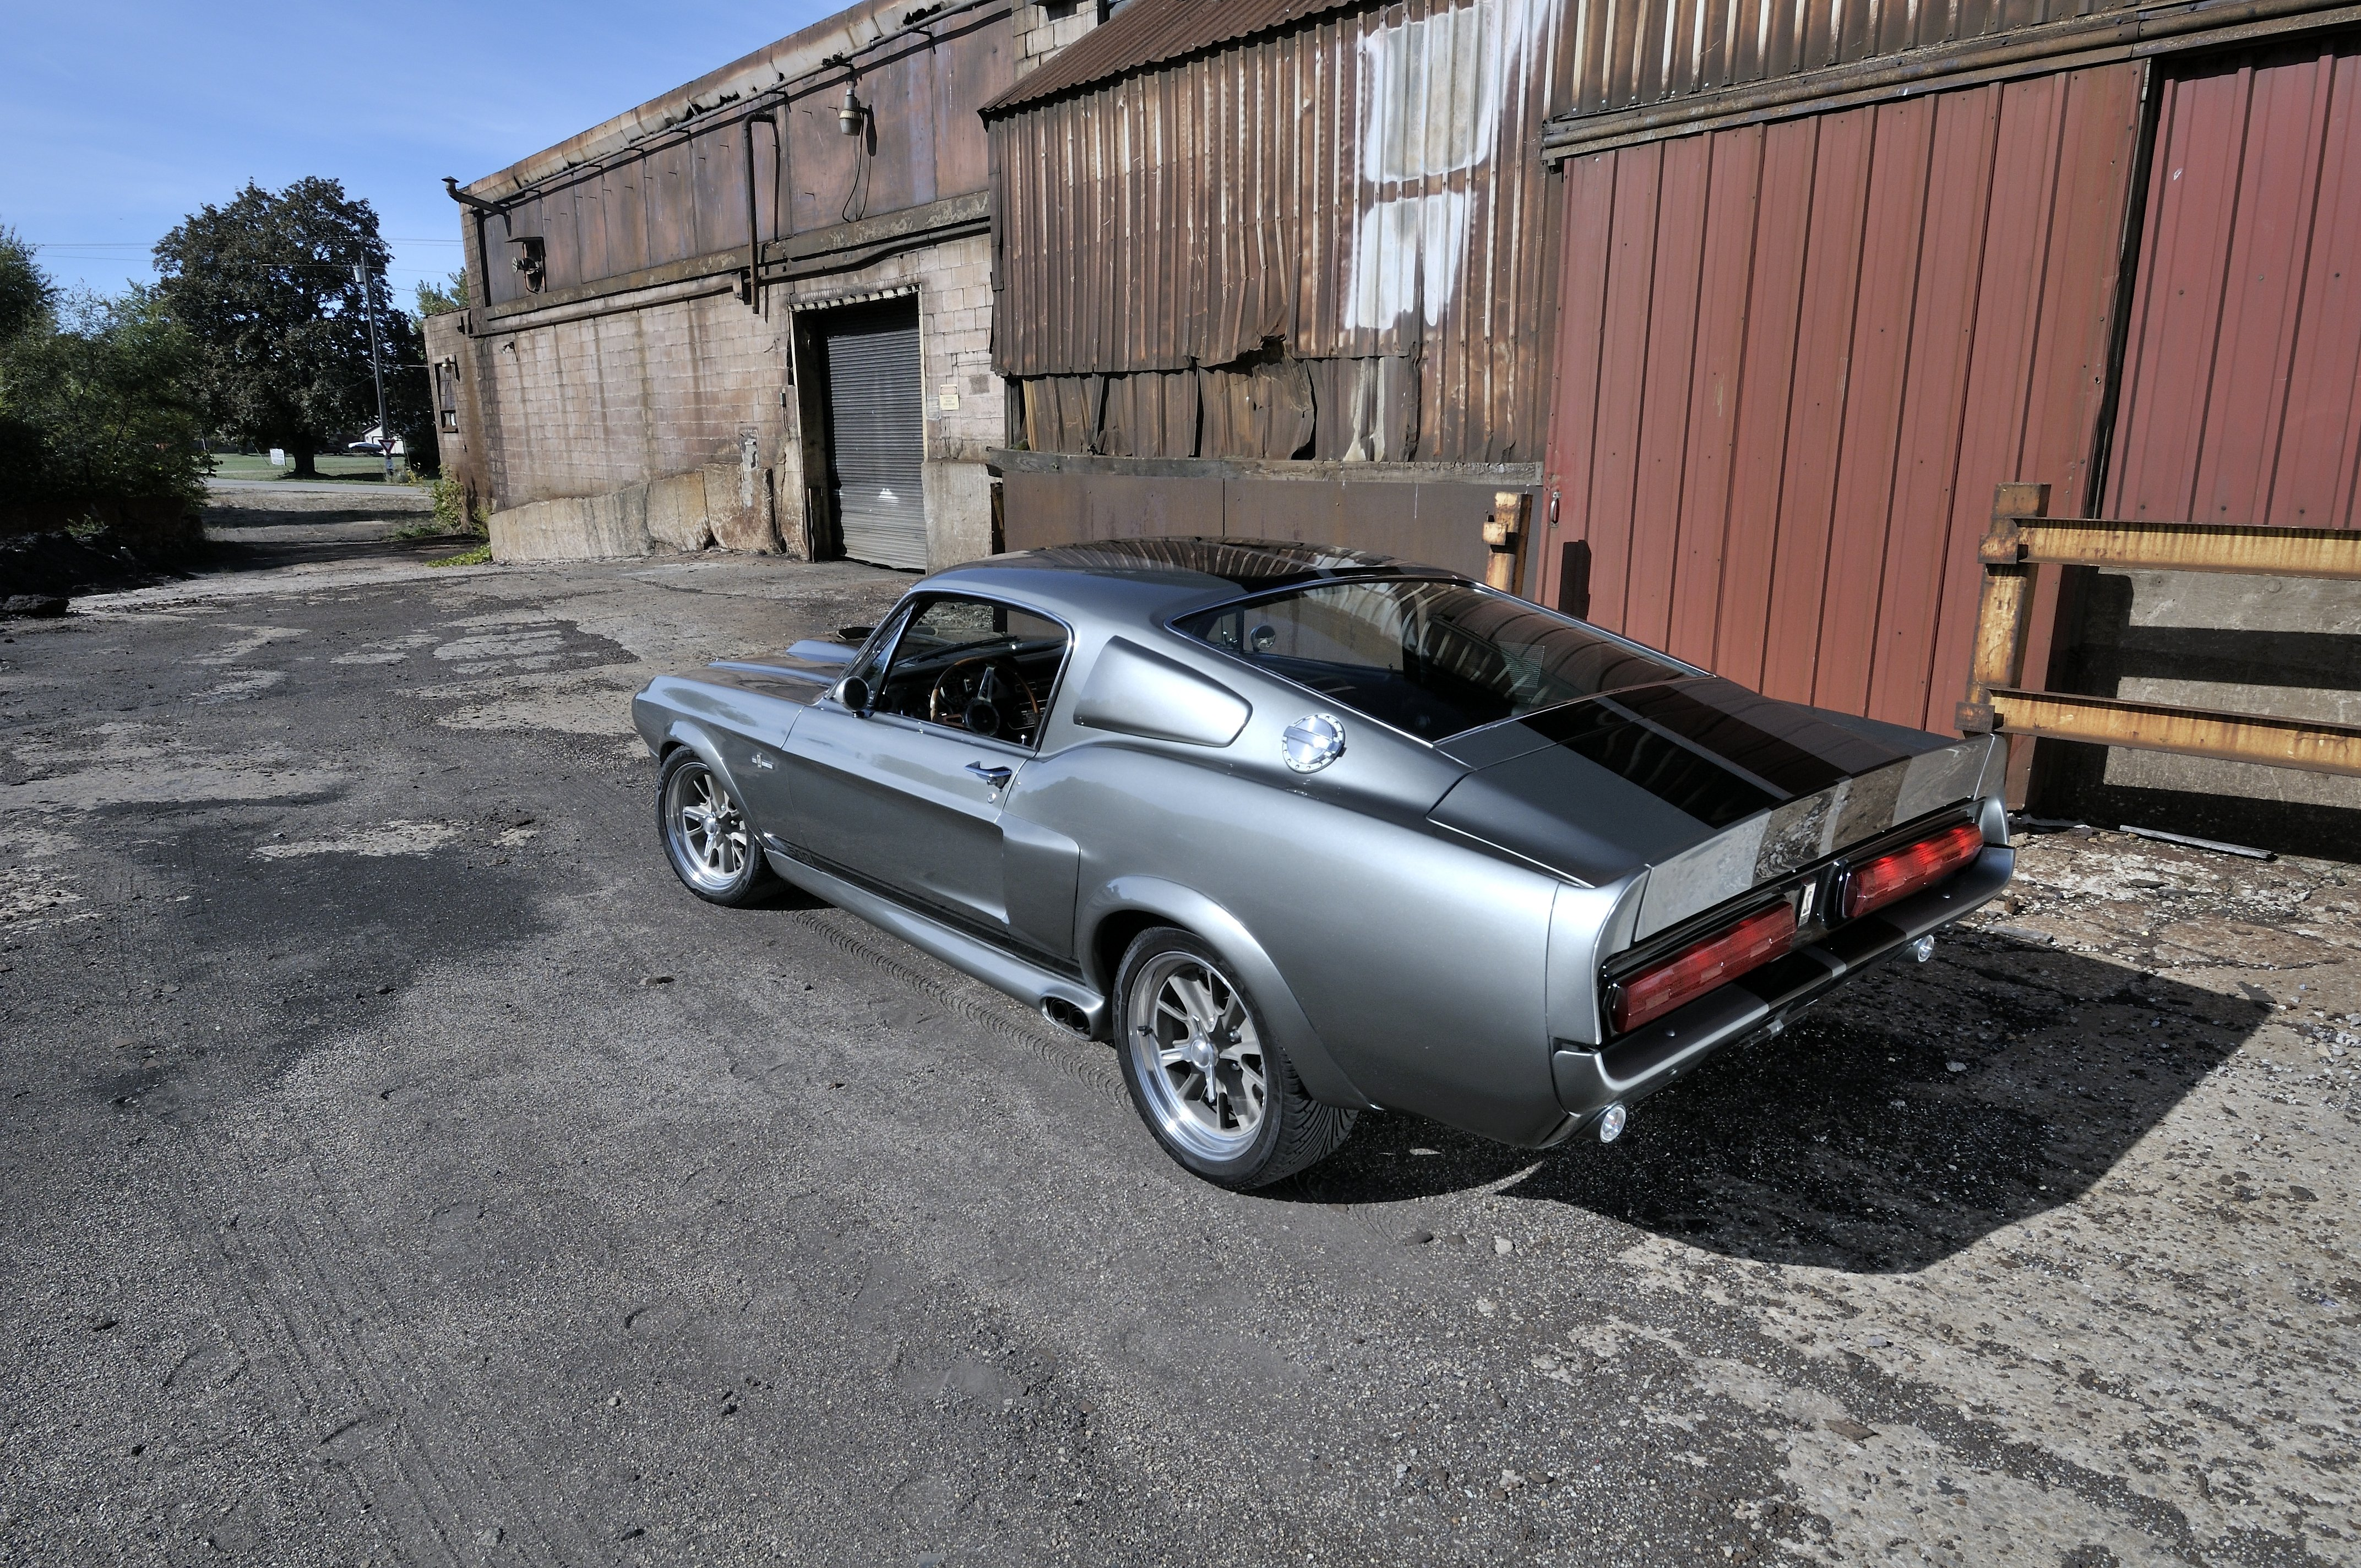 Original Mustang Shelby >> 1967 Ford Mustang Shelby GT500 Eleanor Gone in 60 Seconds ...